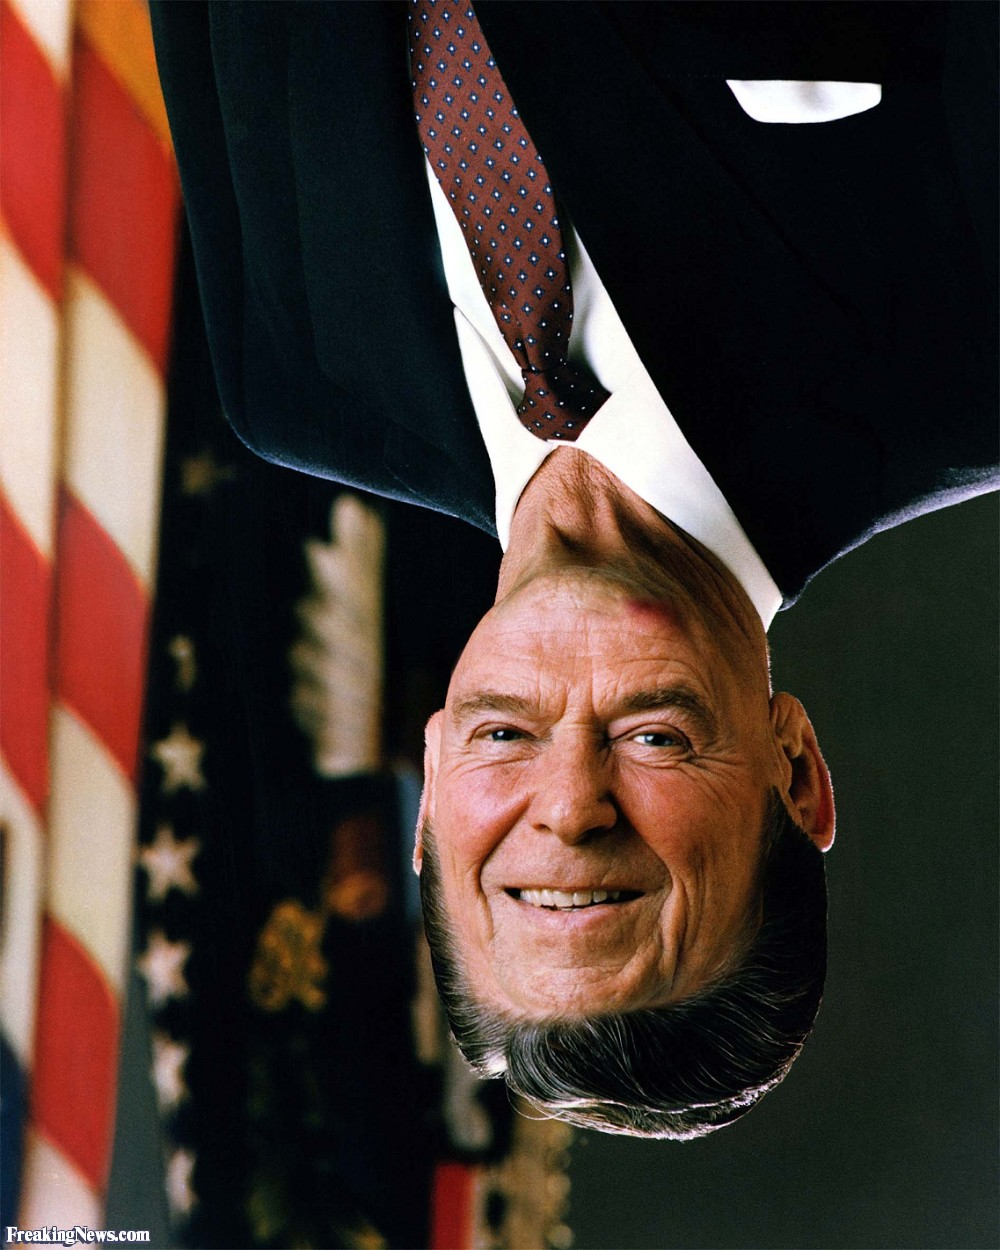 Ronald-Reagan-Upside-Down-111768